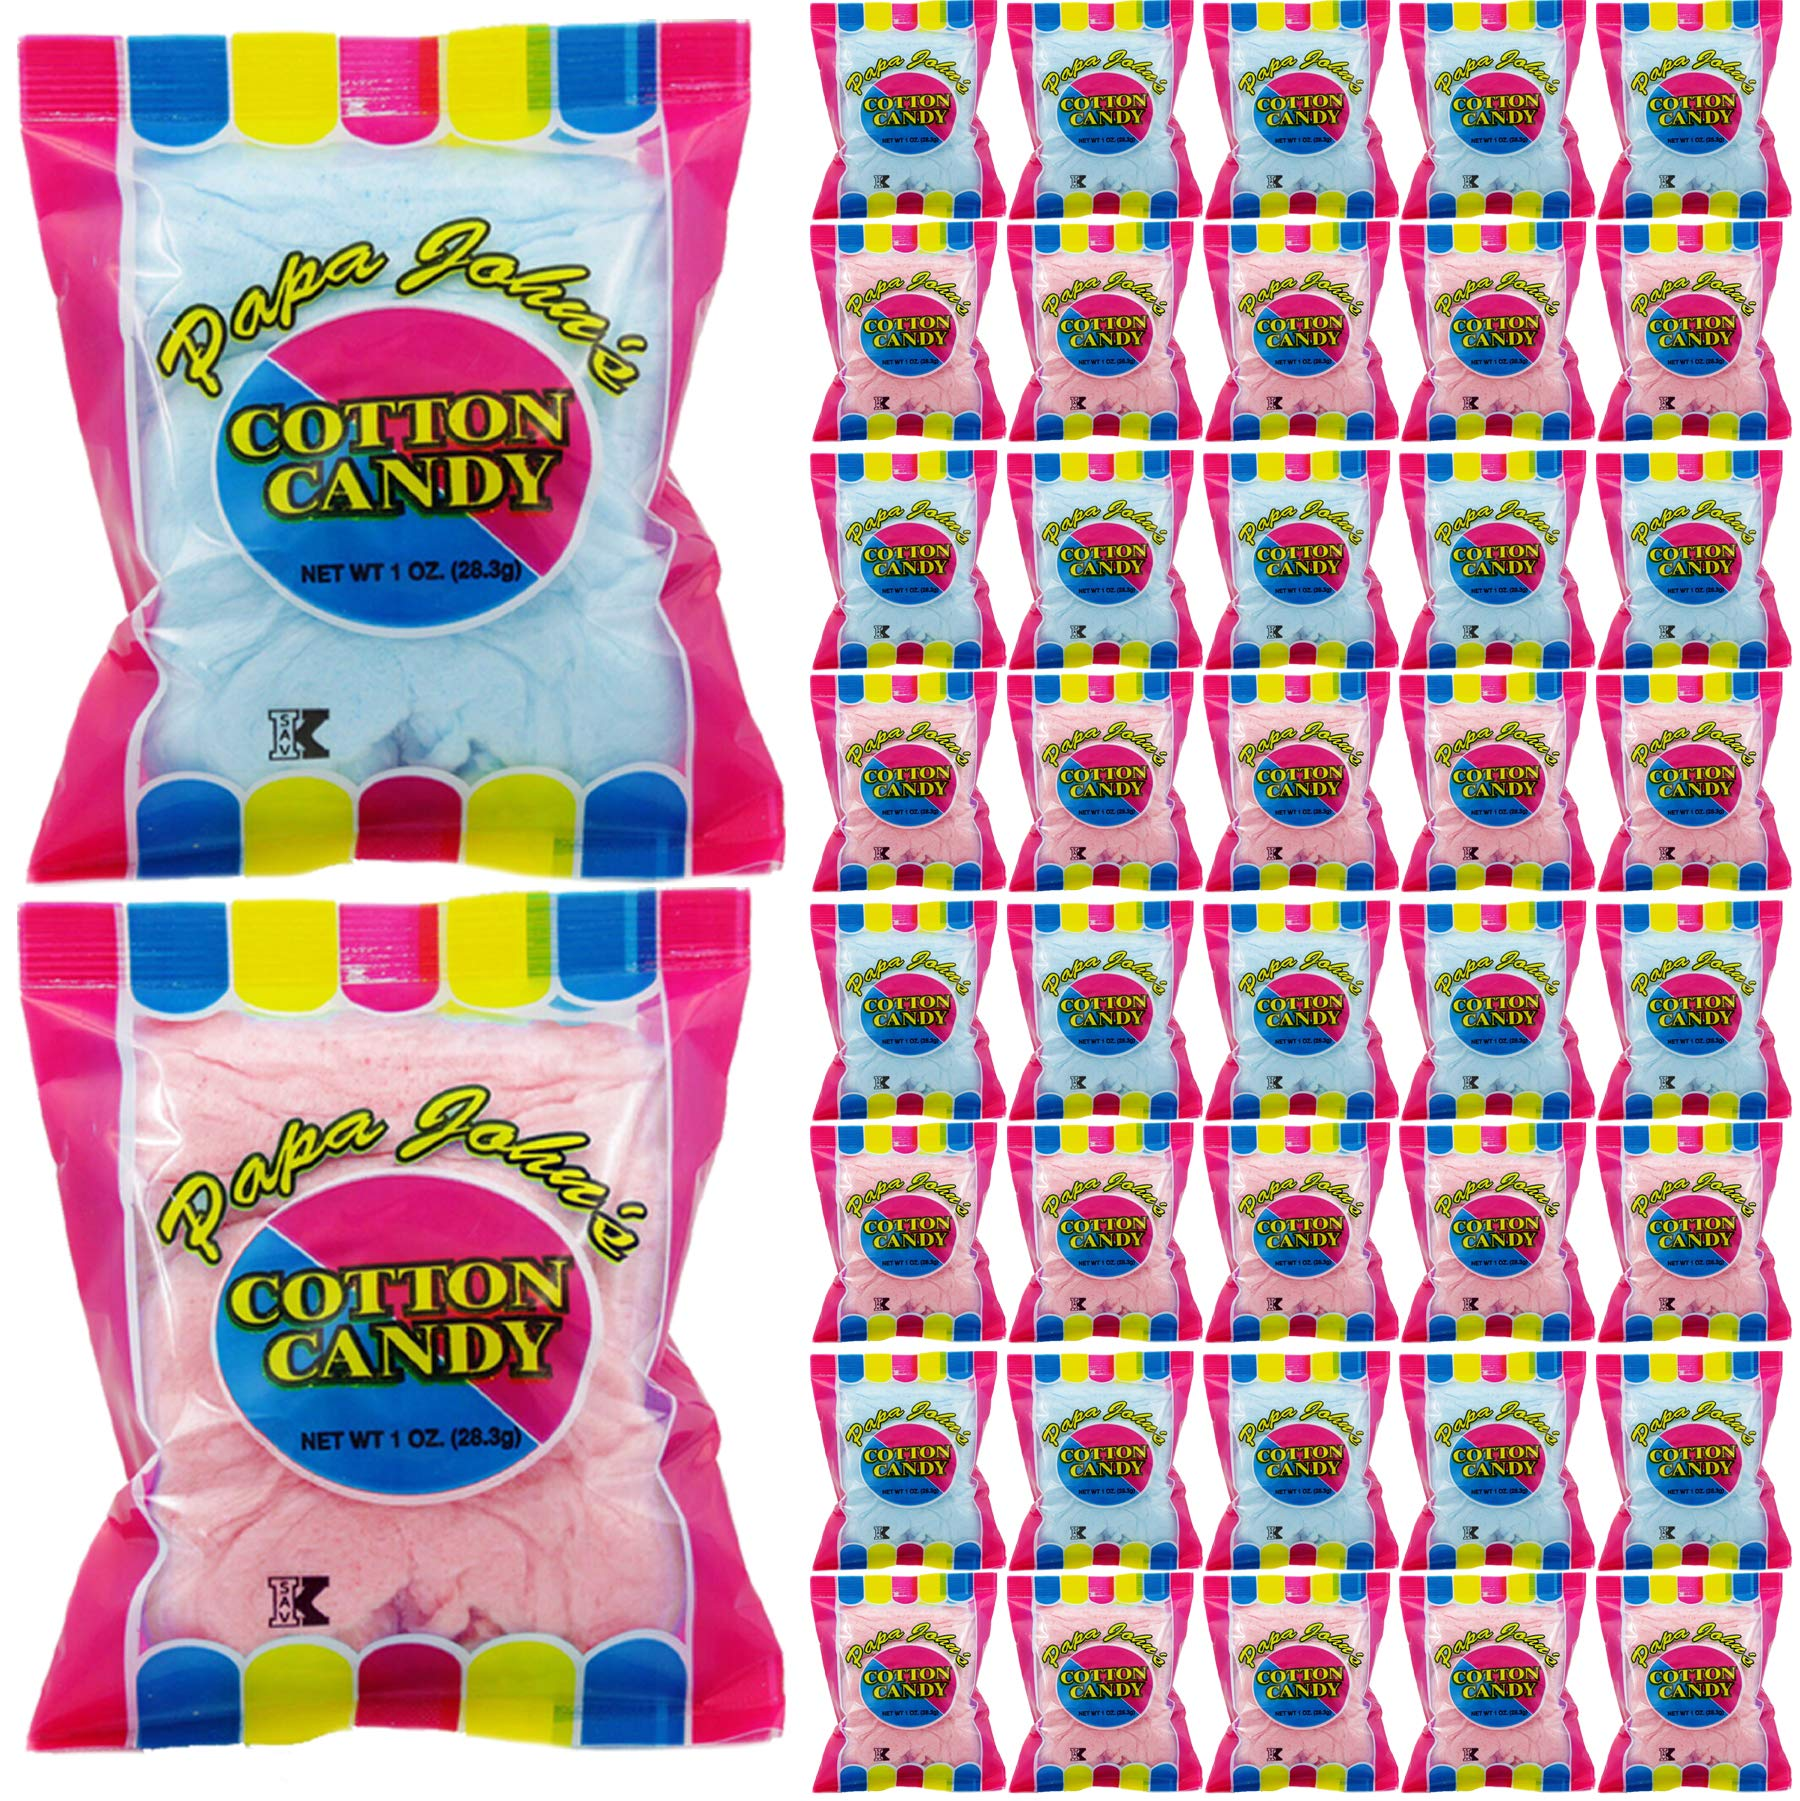 Papa John's Cotton Candy Blue and Pink Party Flavors Supplies Birthday Treats for Kids, Kosher, 1oz Bag (40-Pack) by Papa John's (Image #1)